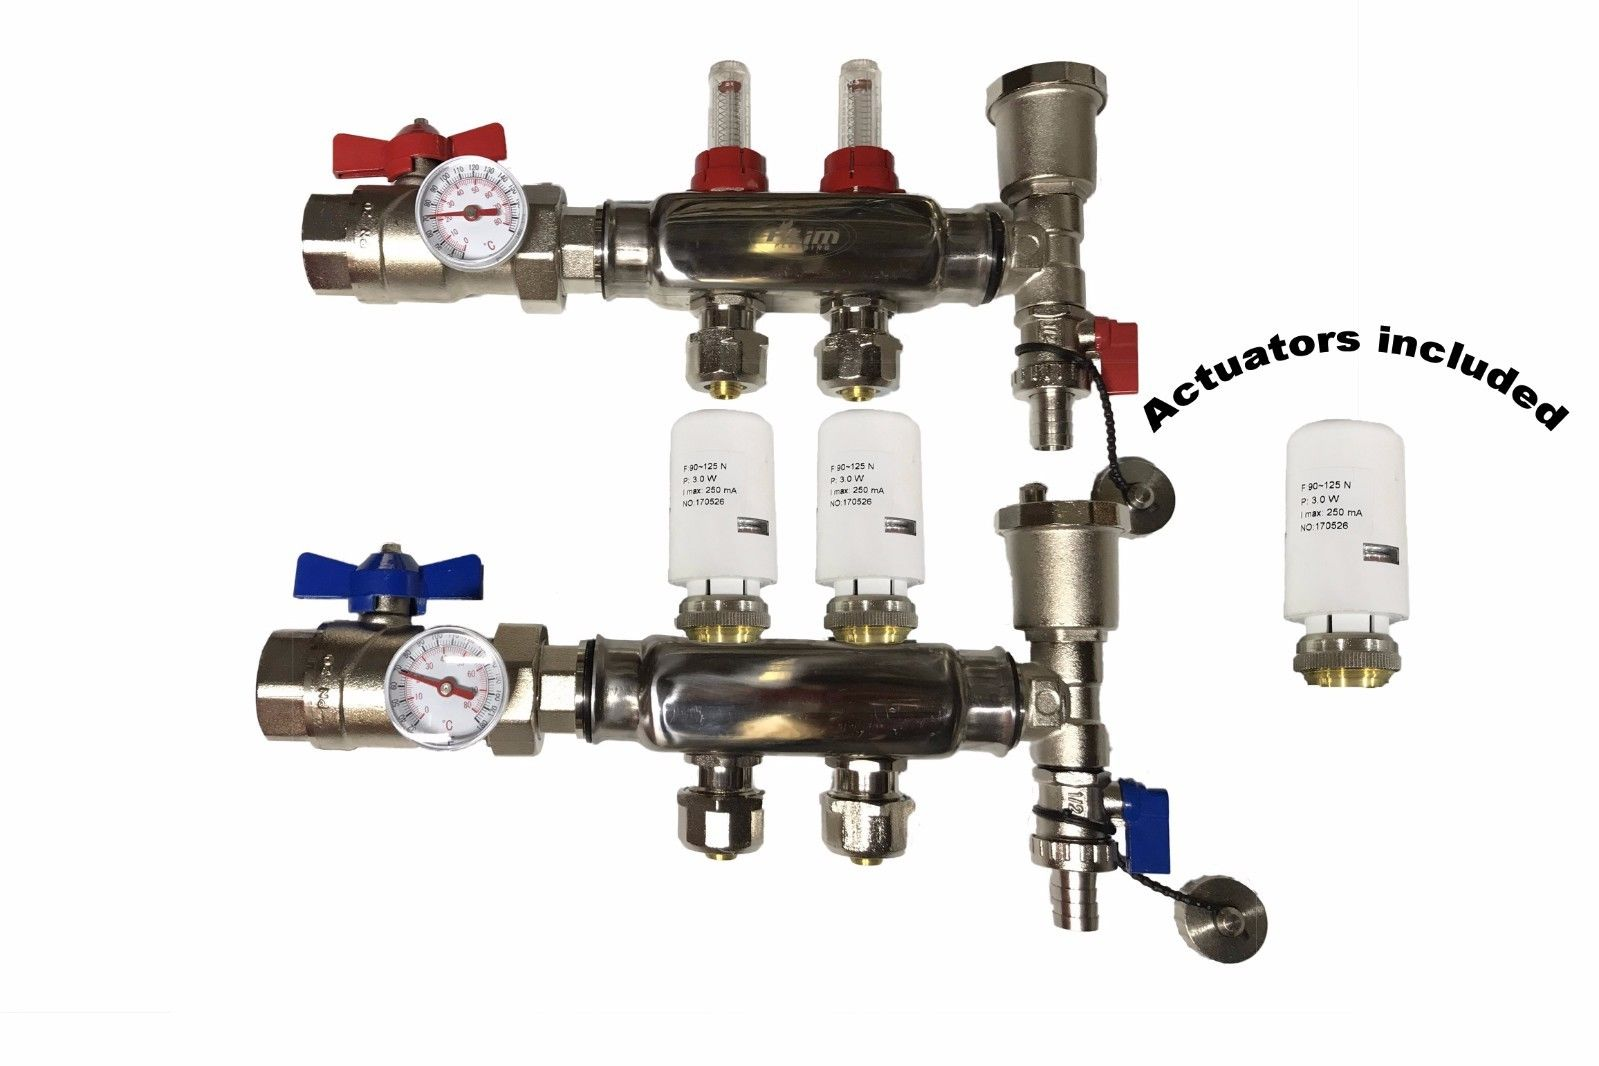 Pex Manifold 2 Loop Port Stainless Steel Radiant Wire Actuator Wiring Heating With 4 Wires